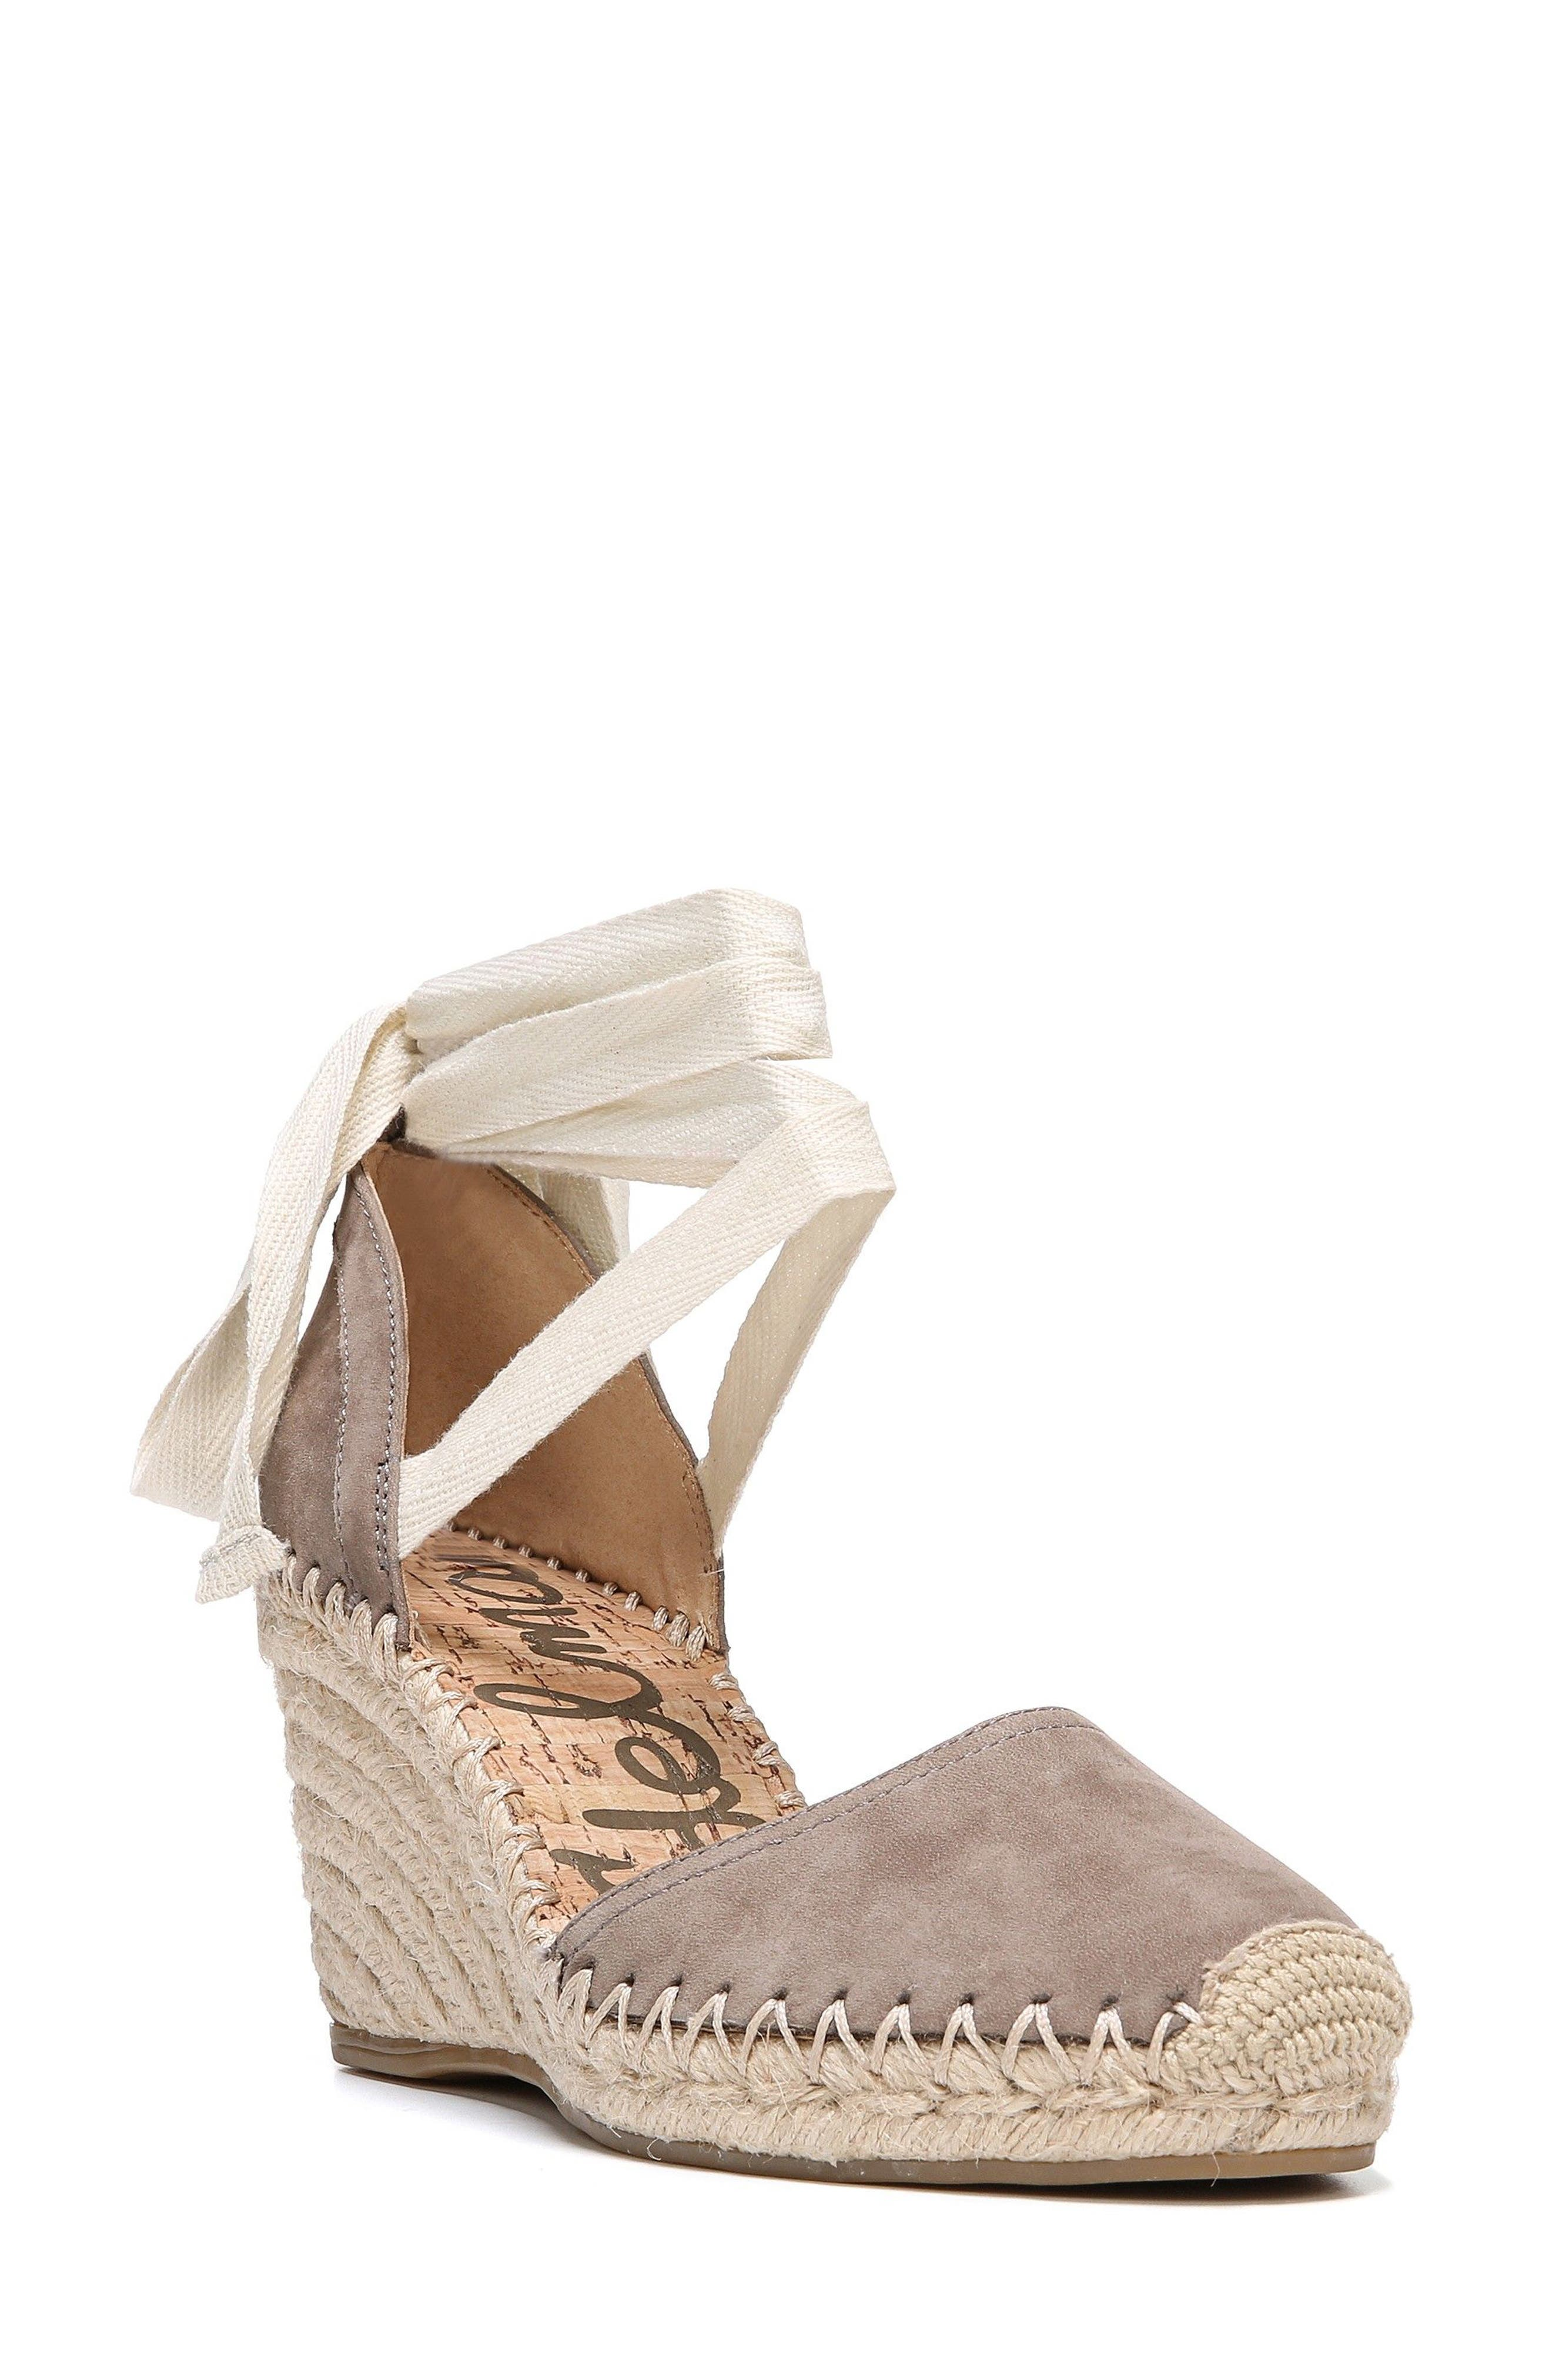 Patsy Wraparound Espadrille Wedge,                             Main thumbnail 1, color,                             020